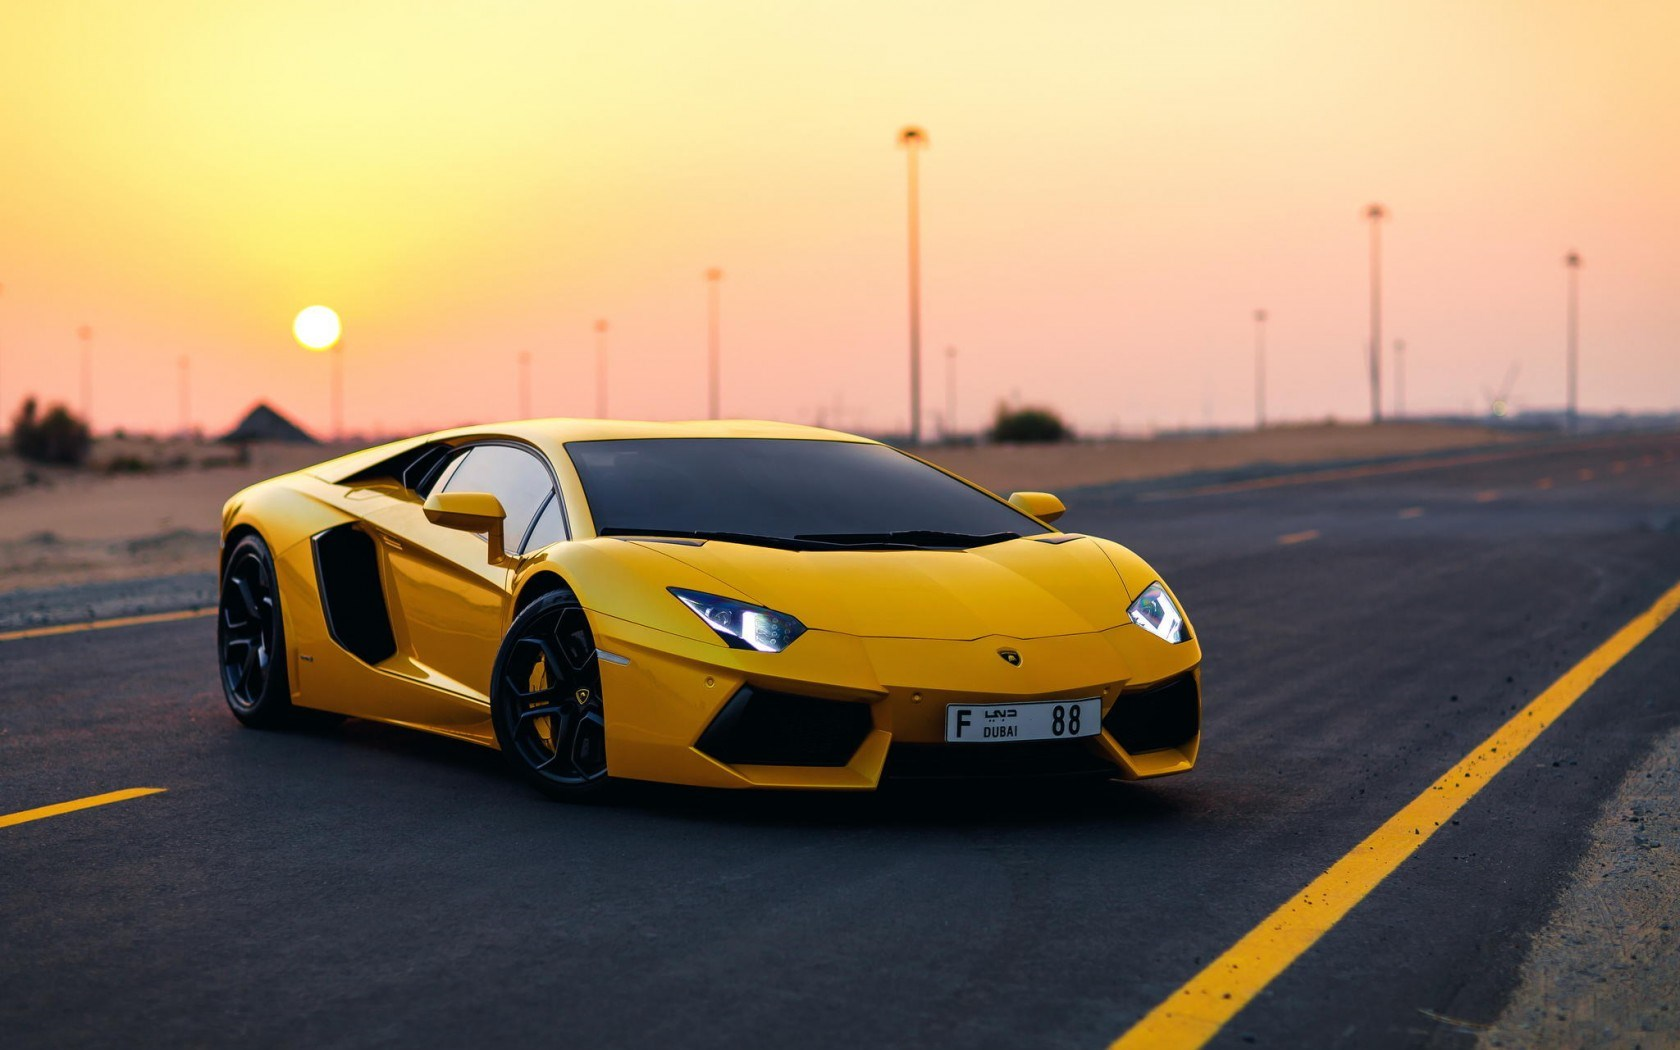 Here39;s Your DropDead Gorgeous Lamborghini Aventador Wallpaper